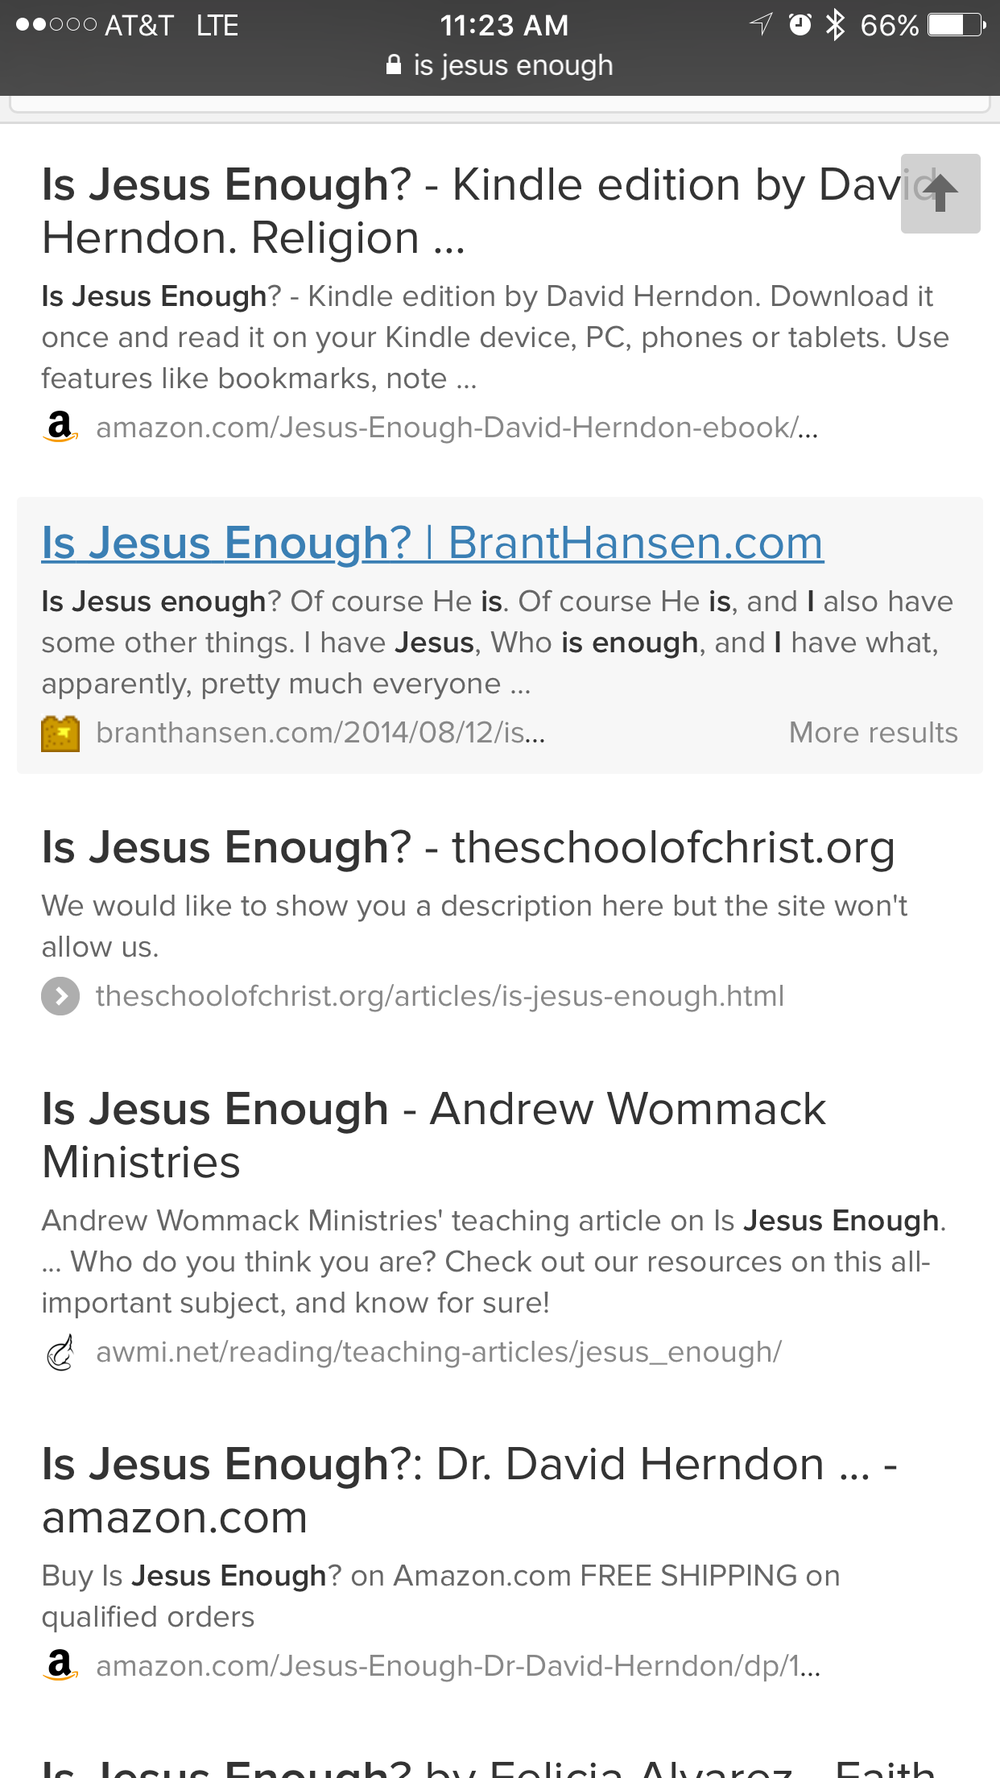 What Google told me when I asked if Jesus was enough.